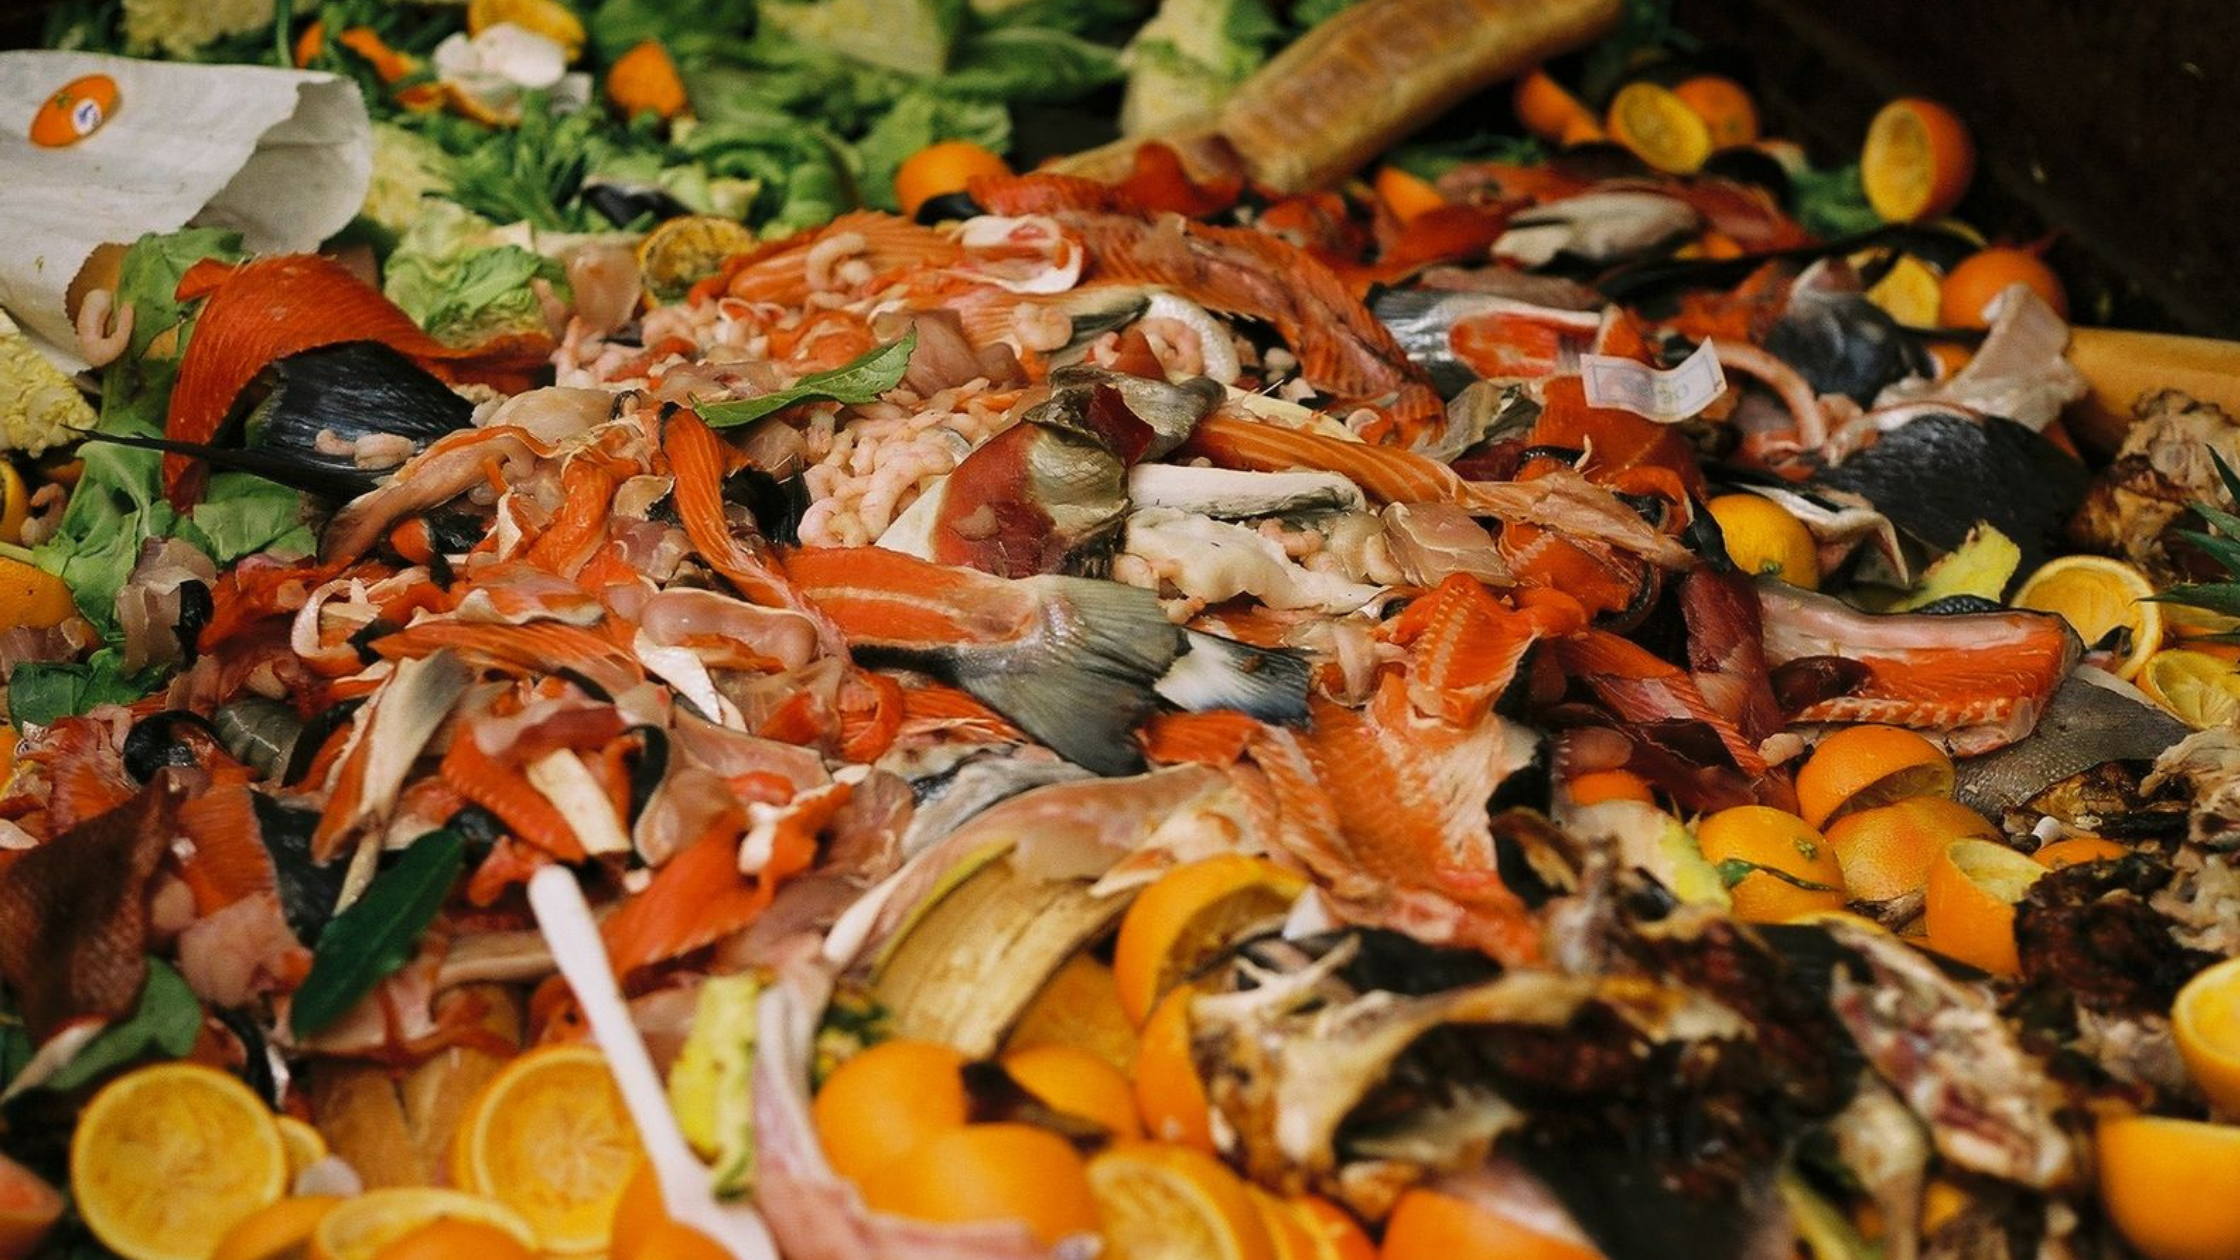 Pile of food scraps (including fish tails, orange peels, and rotten produce)